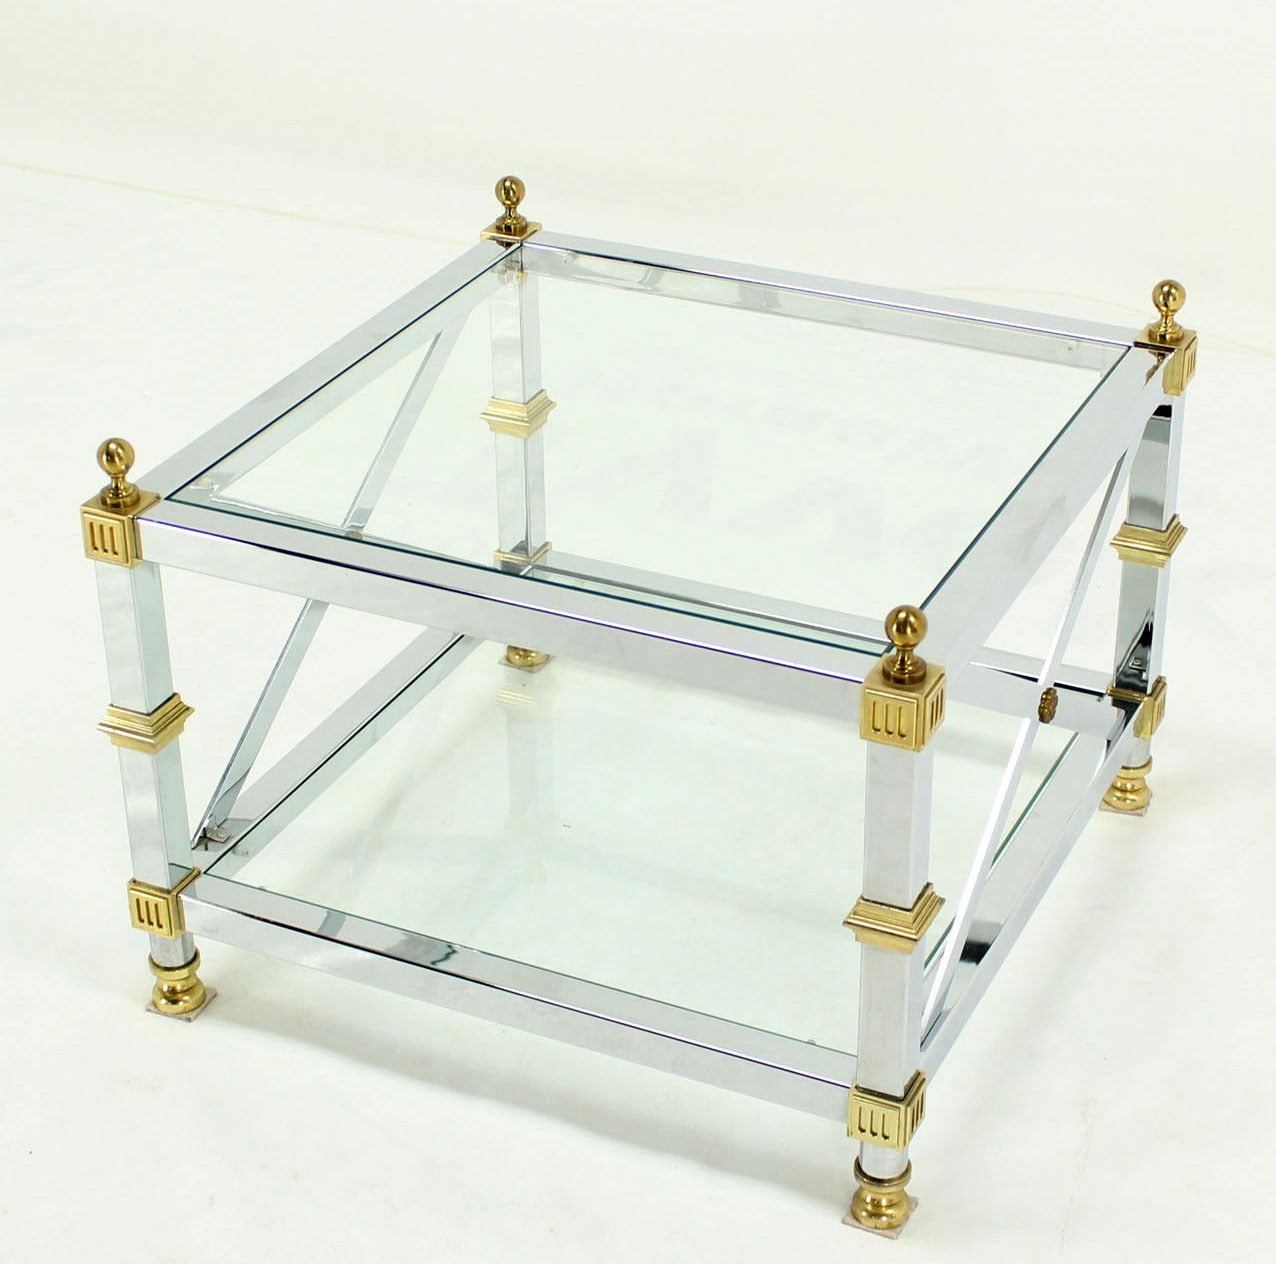 tow tier glass top chrome brass x base square side or end table